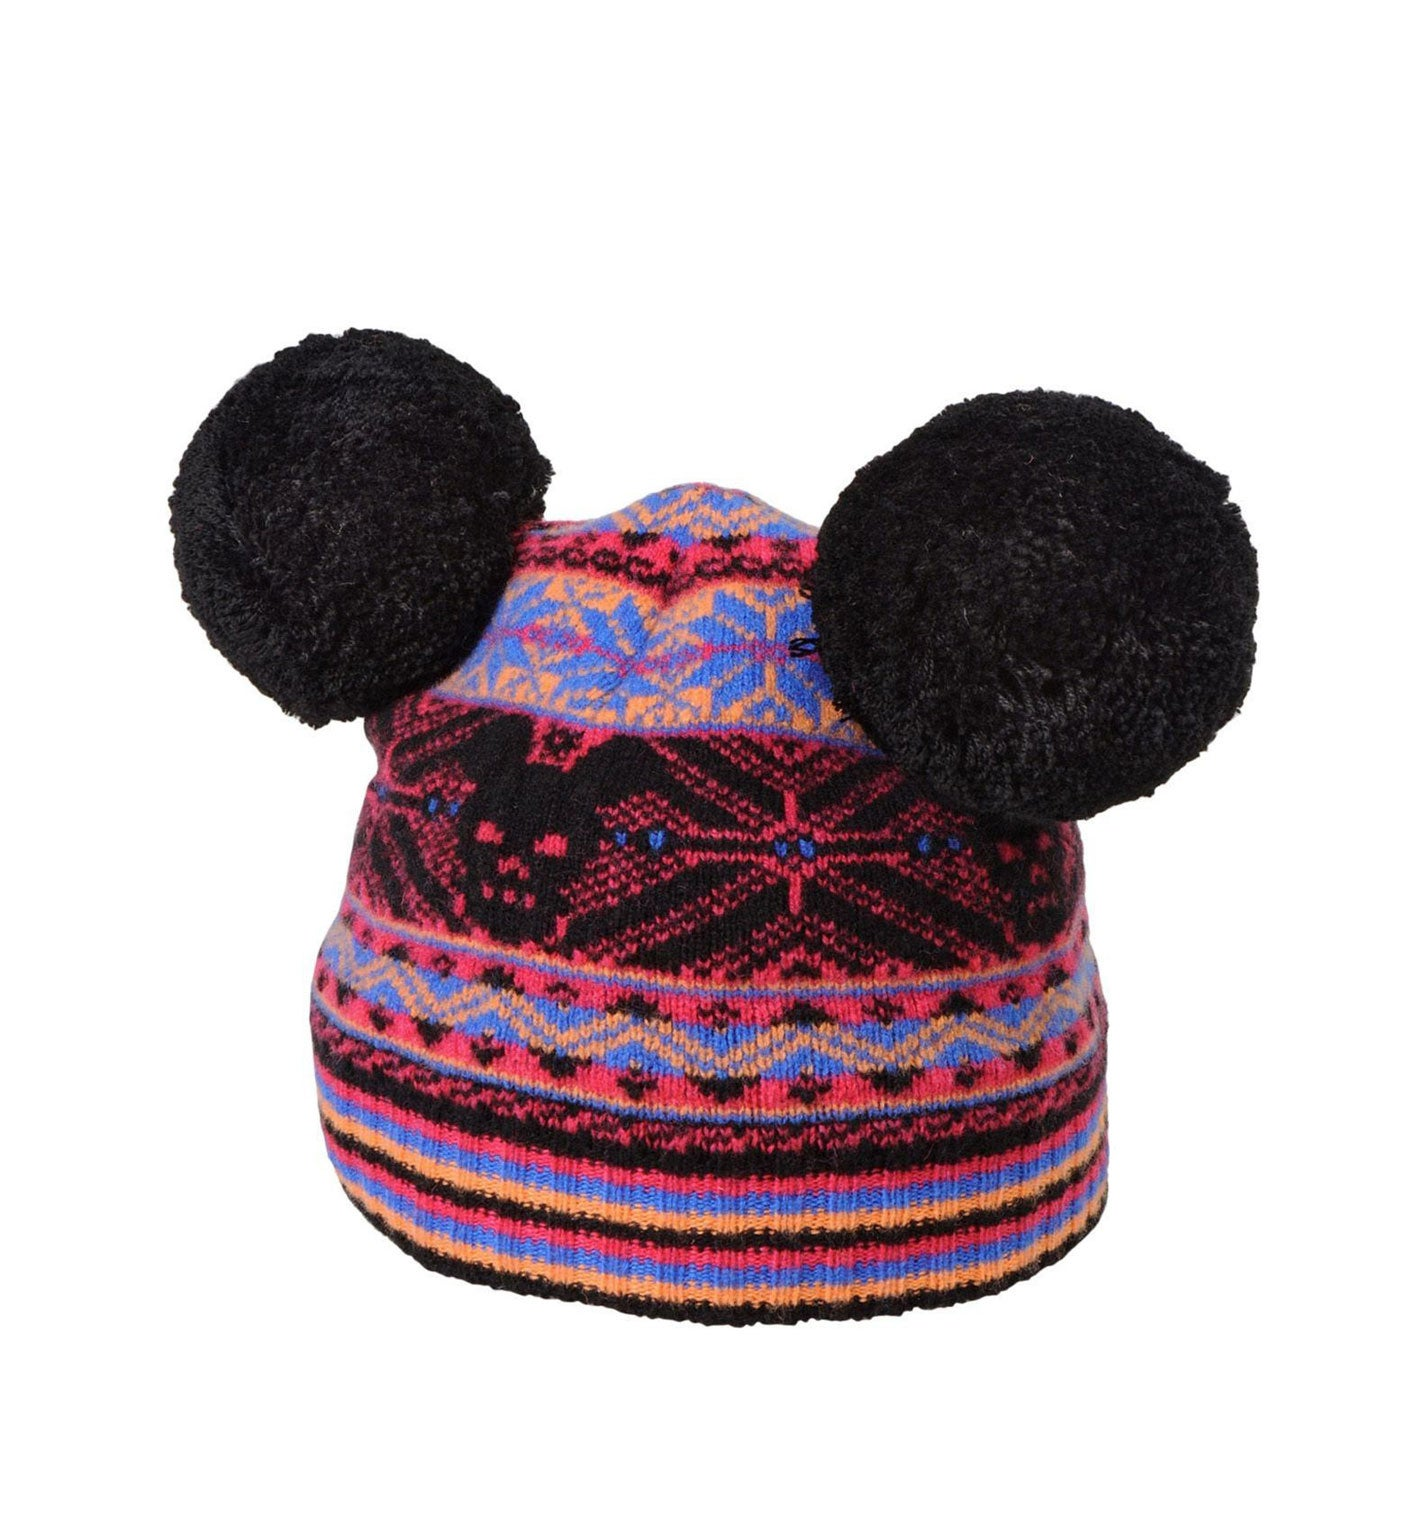 638d6bf5541ece The 10 Best winter hats | The Independent